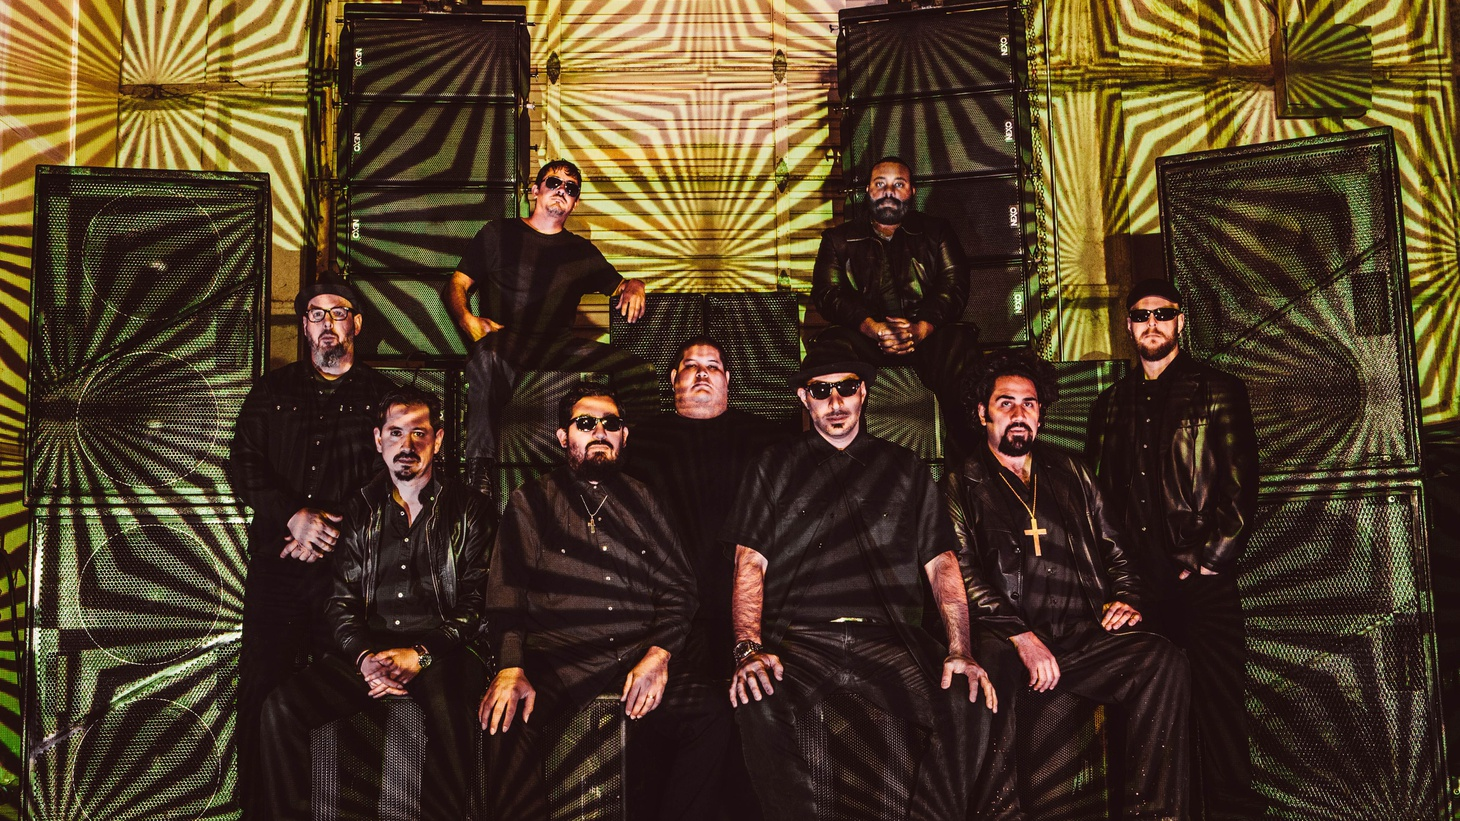 Austin-based octet Brownout revel in their love of Black Sabbath while keeping true to their funky roots on their latest release.